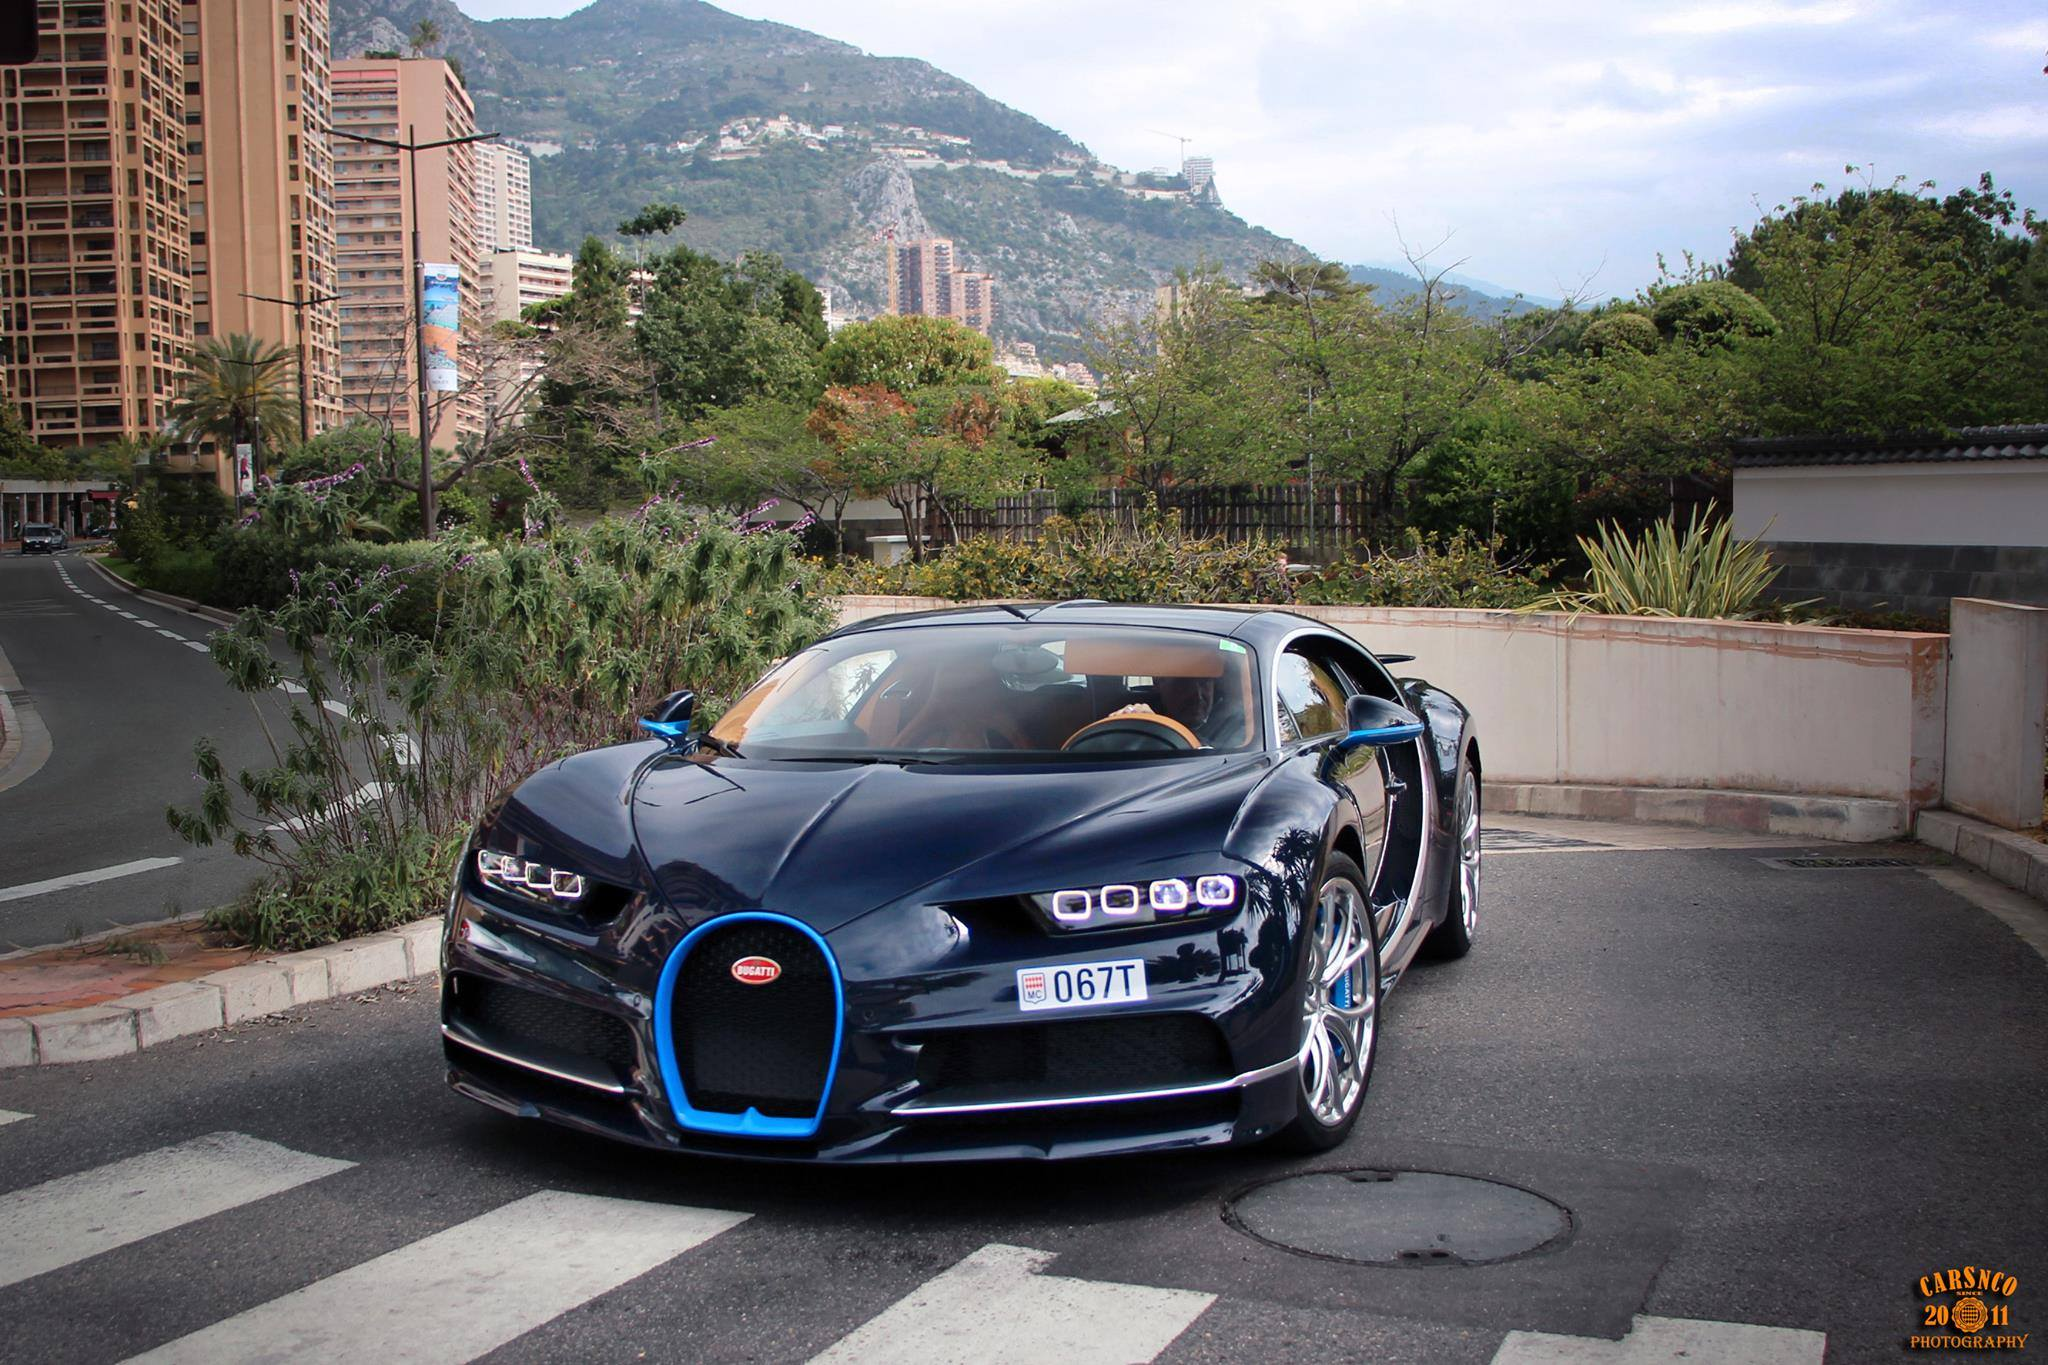 bugatti chiron car cost html with Next Bugatti Chiron Will Electrified on 2018 Bugatti Chiron Review And Redesign moreover Black And Gold Sports Cars 31 Cool Hd Wallpaper furthermore How Much Does A Bugatti Chiron Cost further 2016 Bugatti Chiron To Wear A Price Tag In Excess Of 25 Million 99429 additionally Real Madrid Star Cristiano Ronaldo 6m Car Collection.